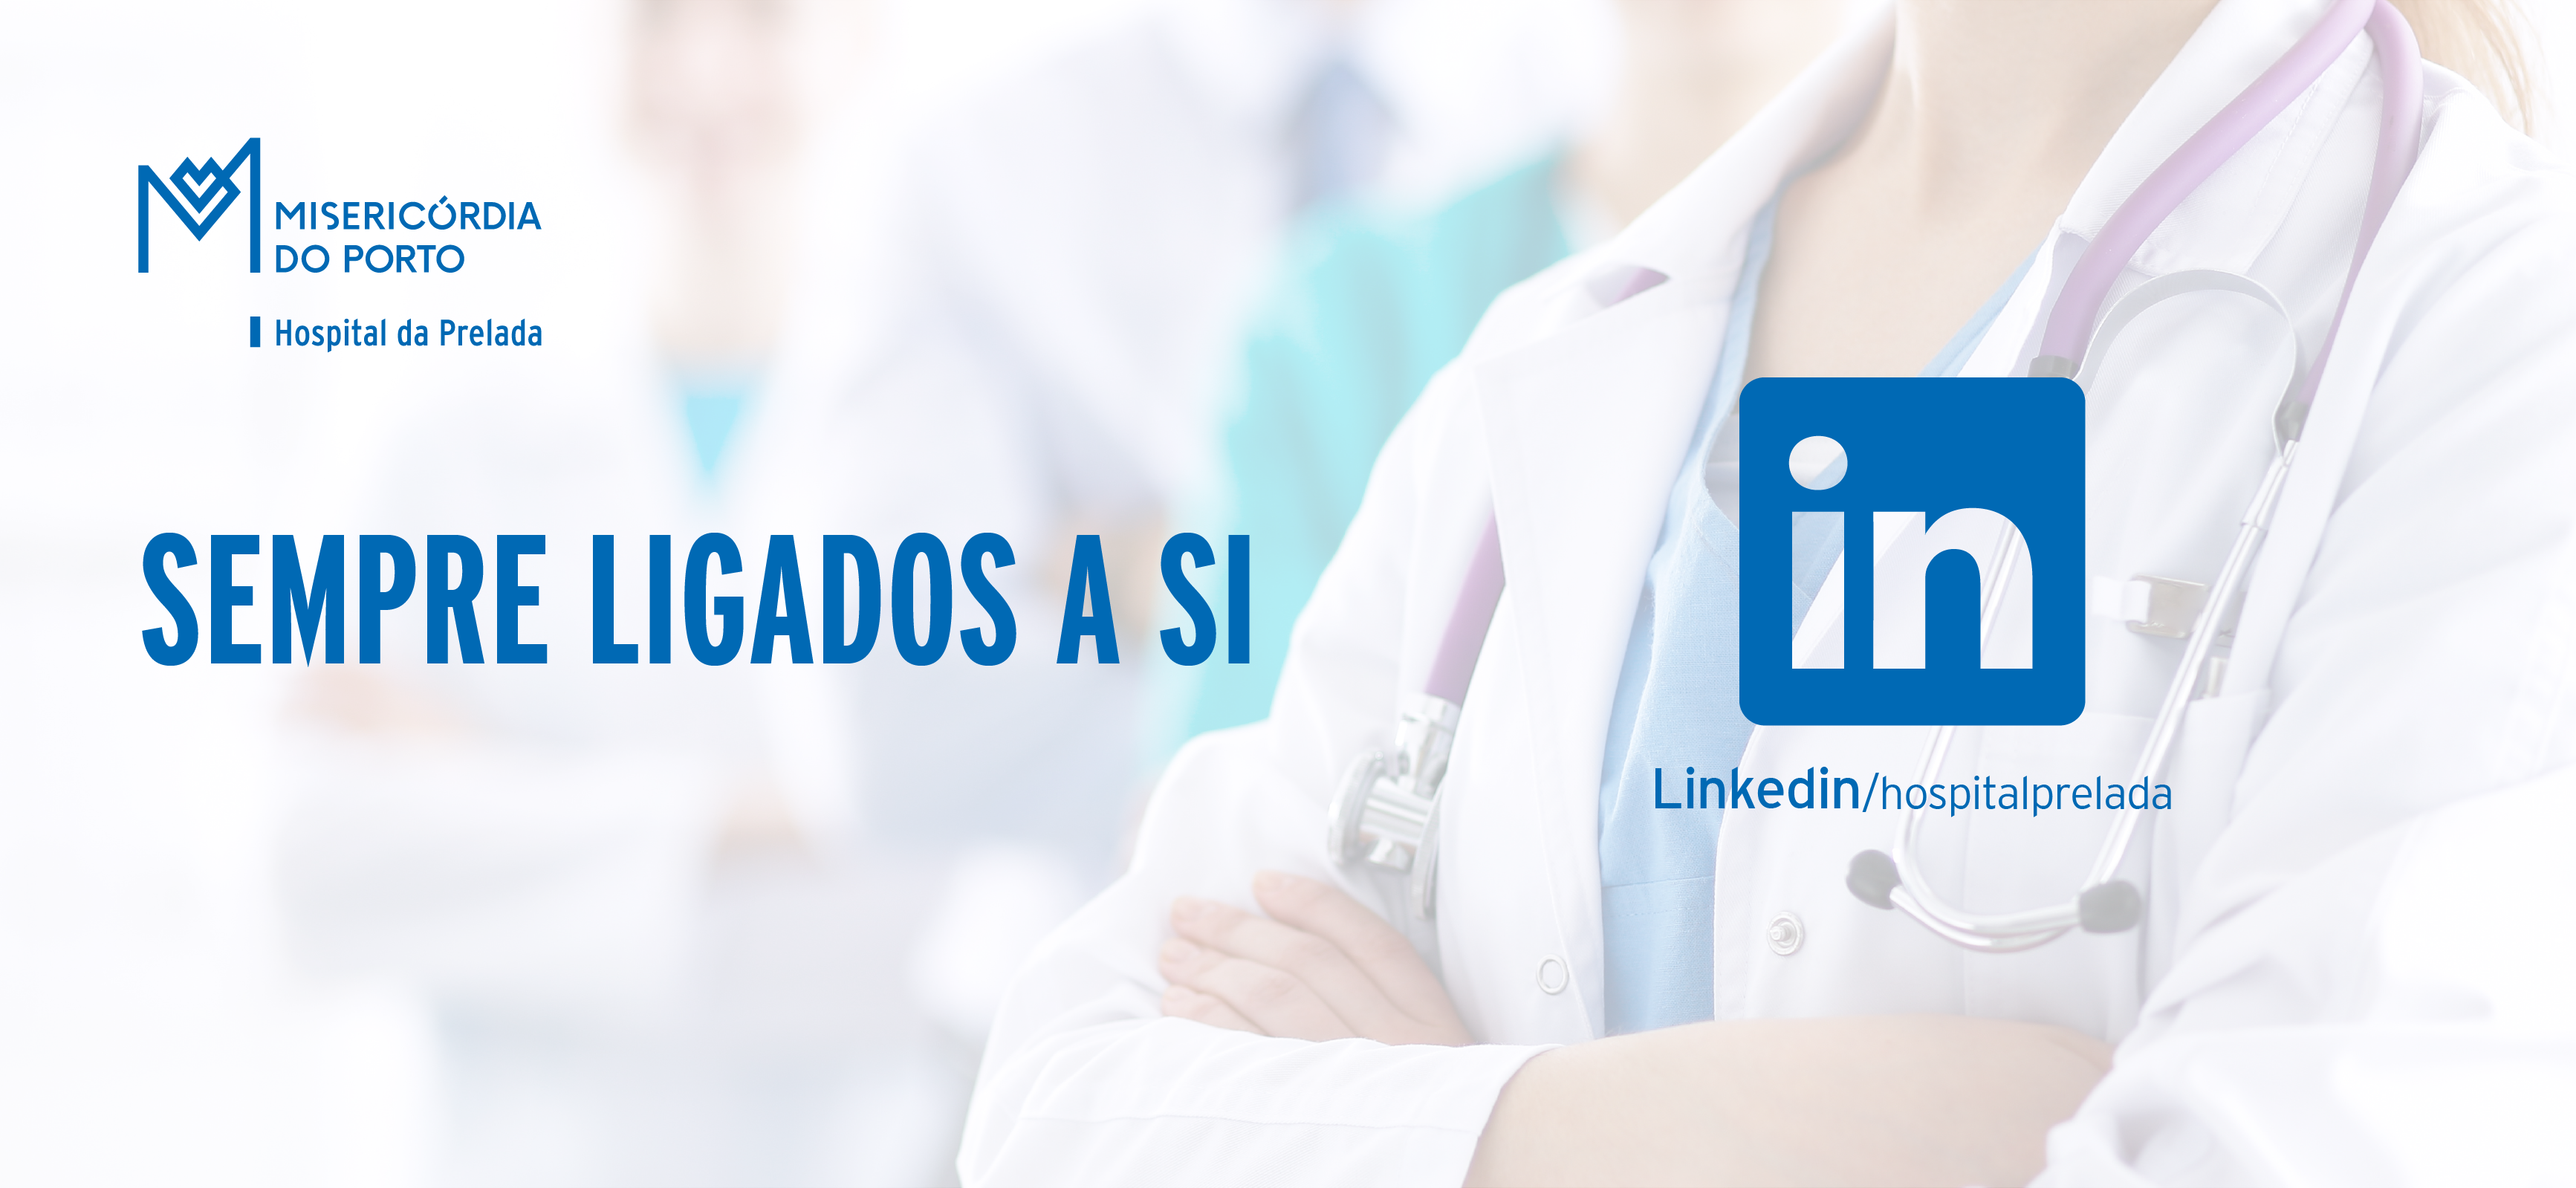 https://www.scmp.pt/assets/misc/img/2020/2020-01-31%20HP%20Noticias/HP0linkedin.png